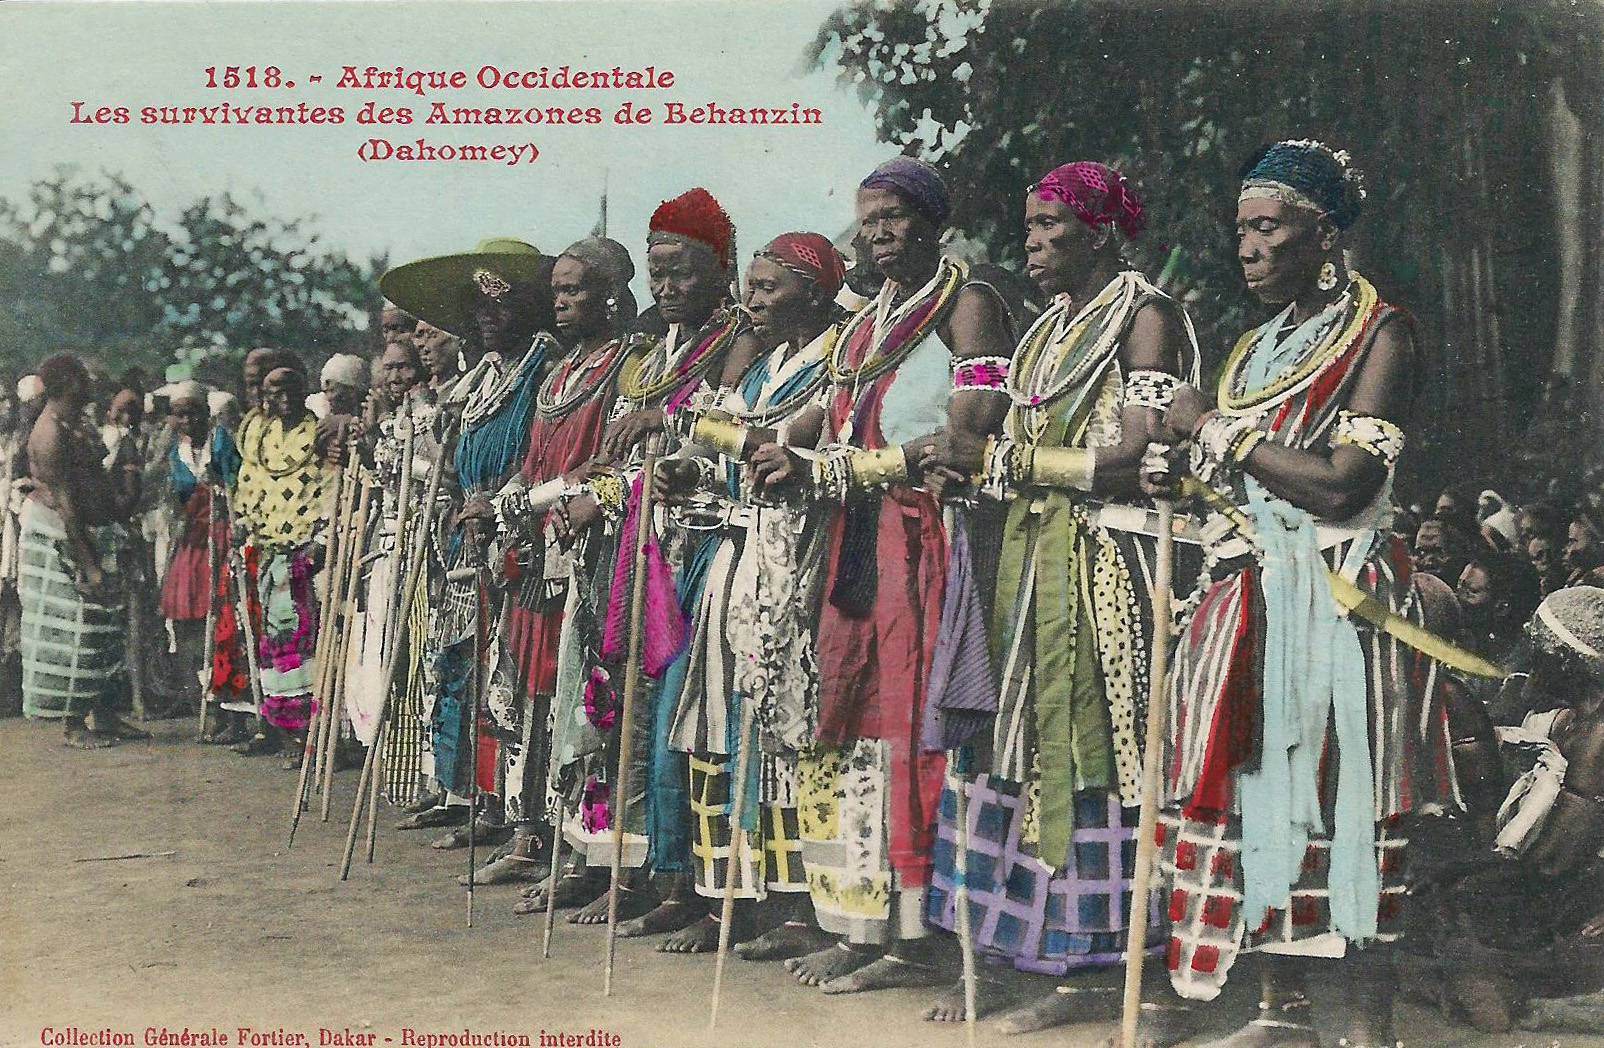 Archival image of an African tribe